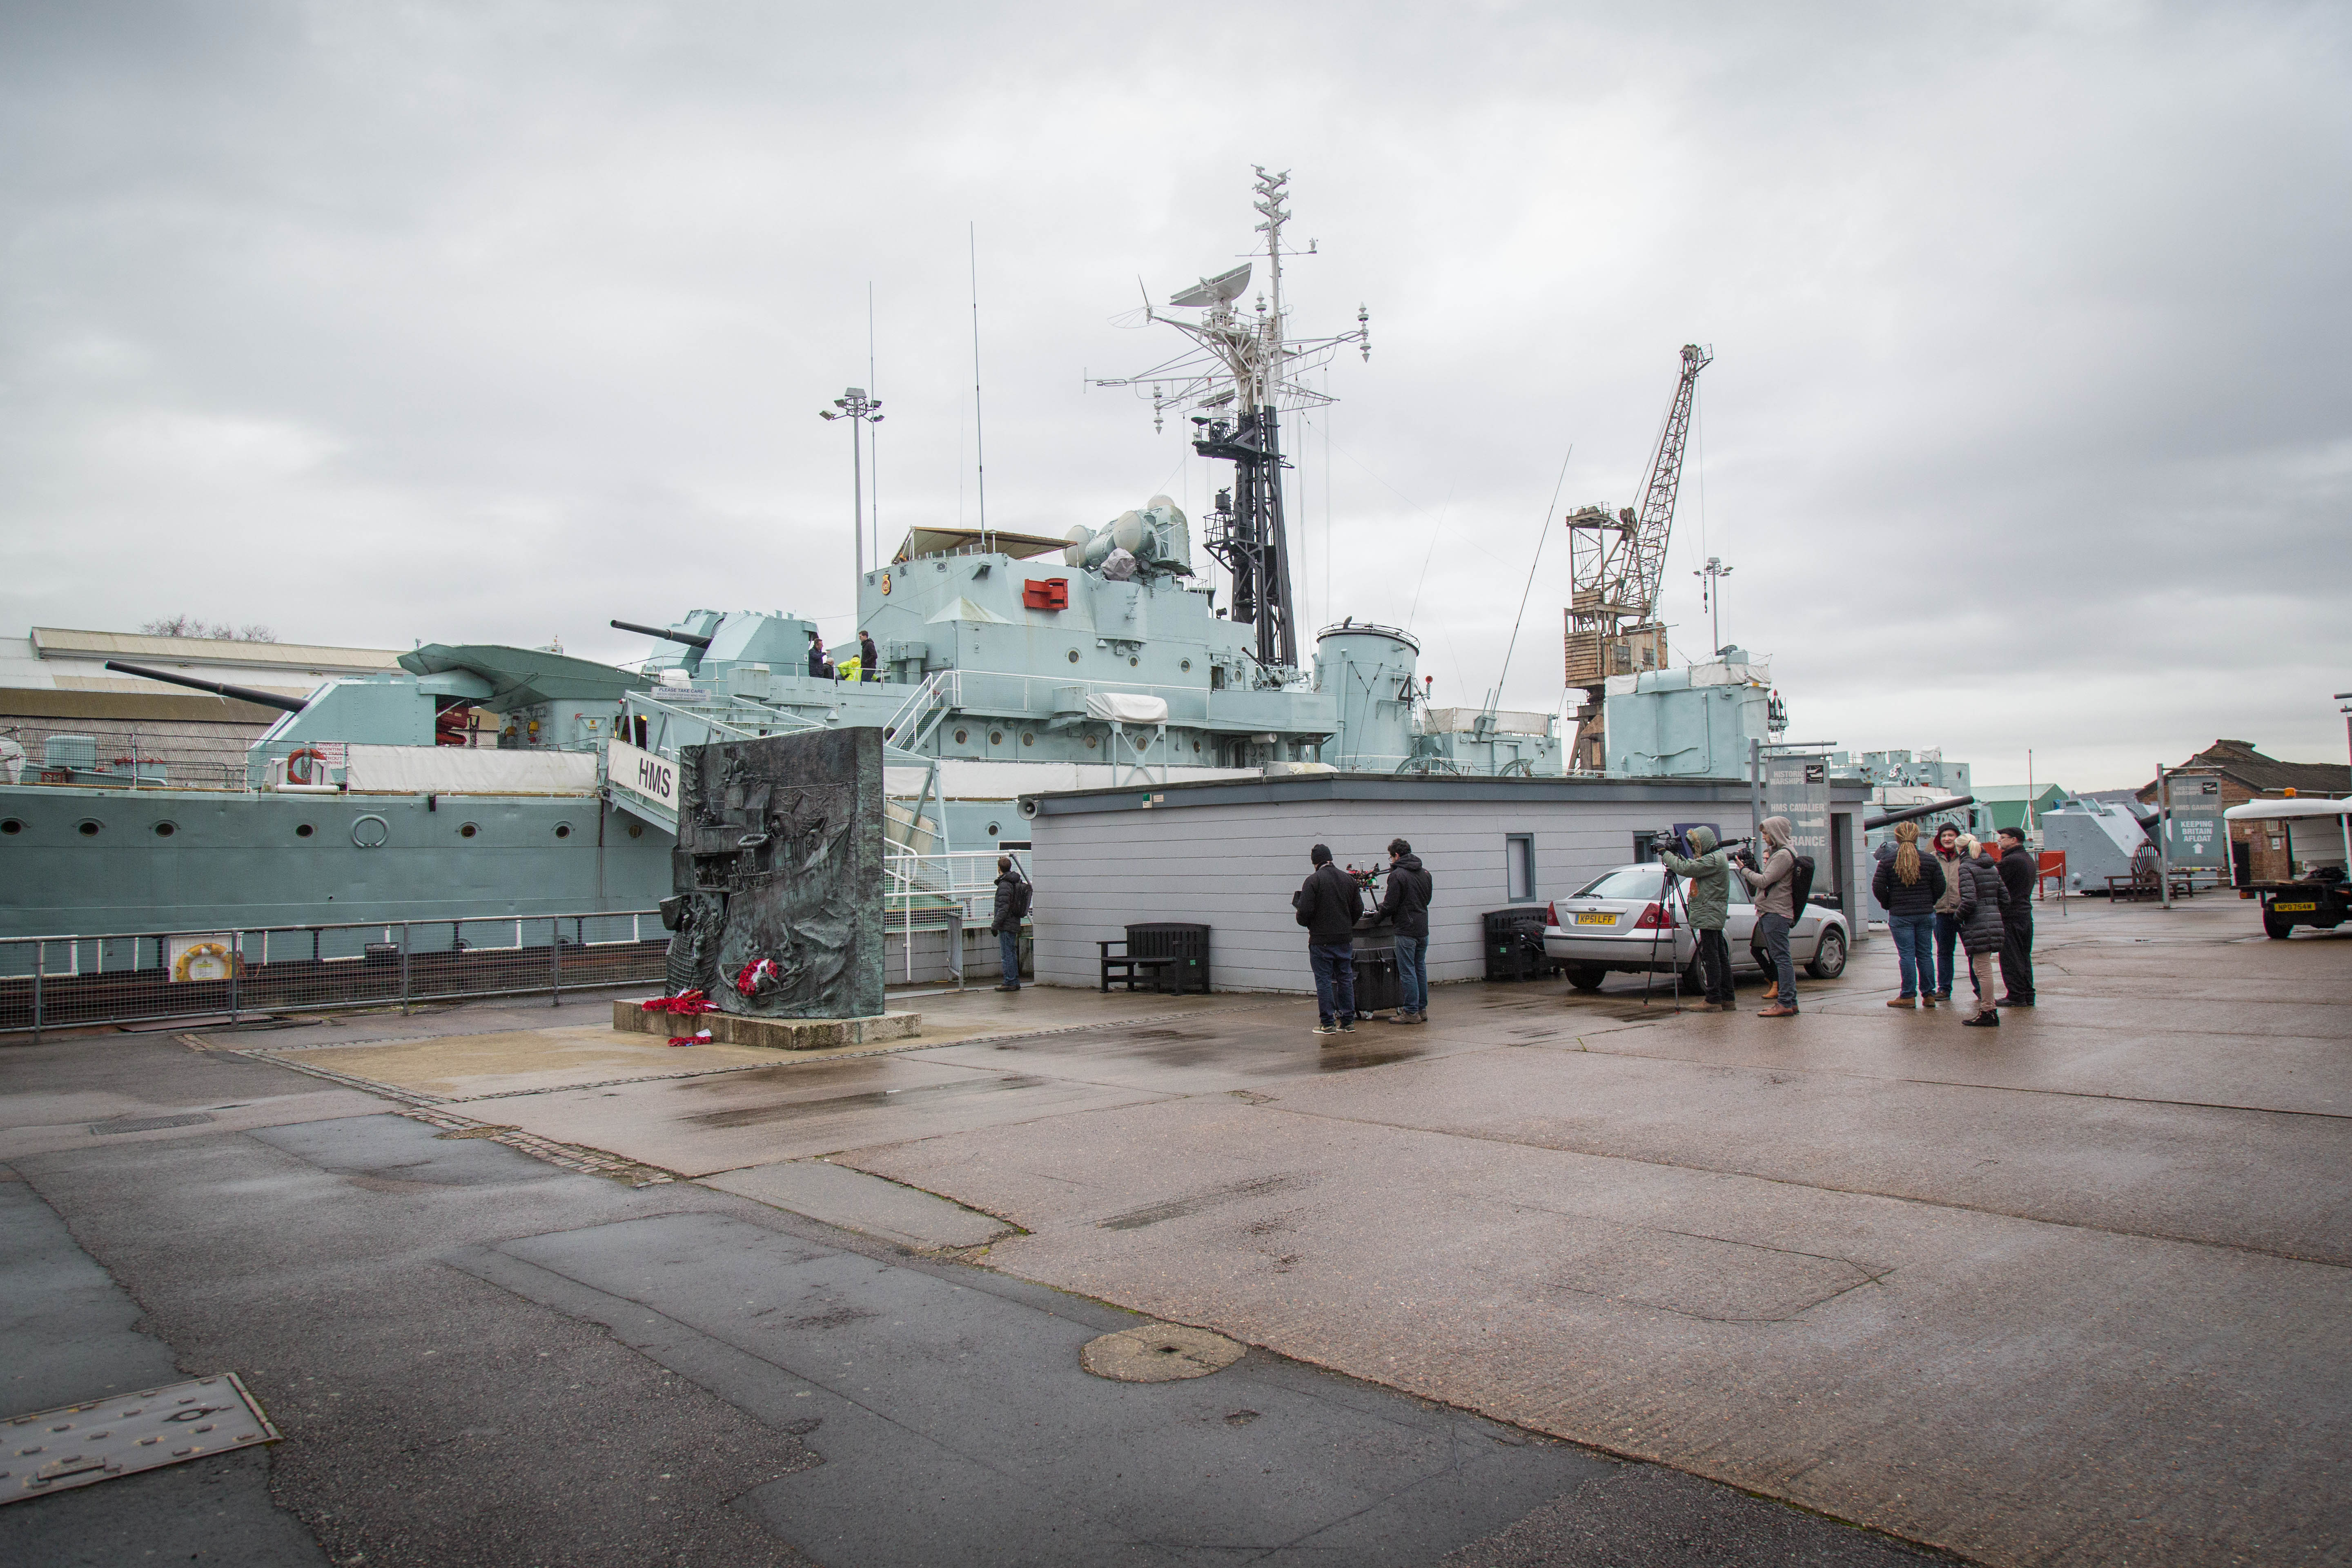 Wargaming shoots a virtual reality tour of the HMS Cavalier in Chatham, England.